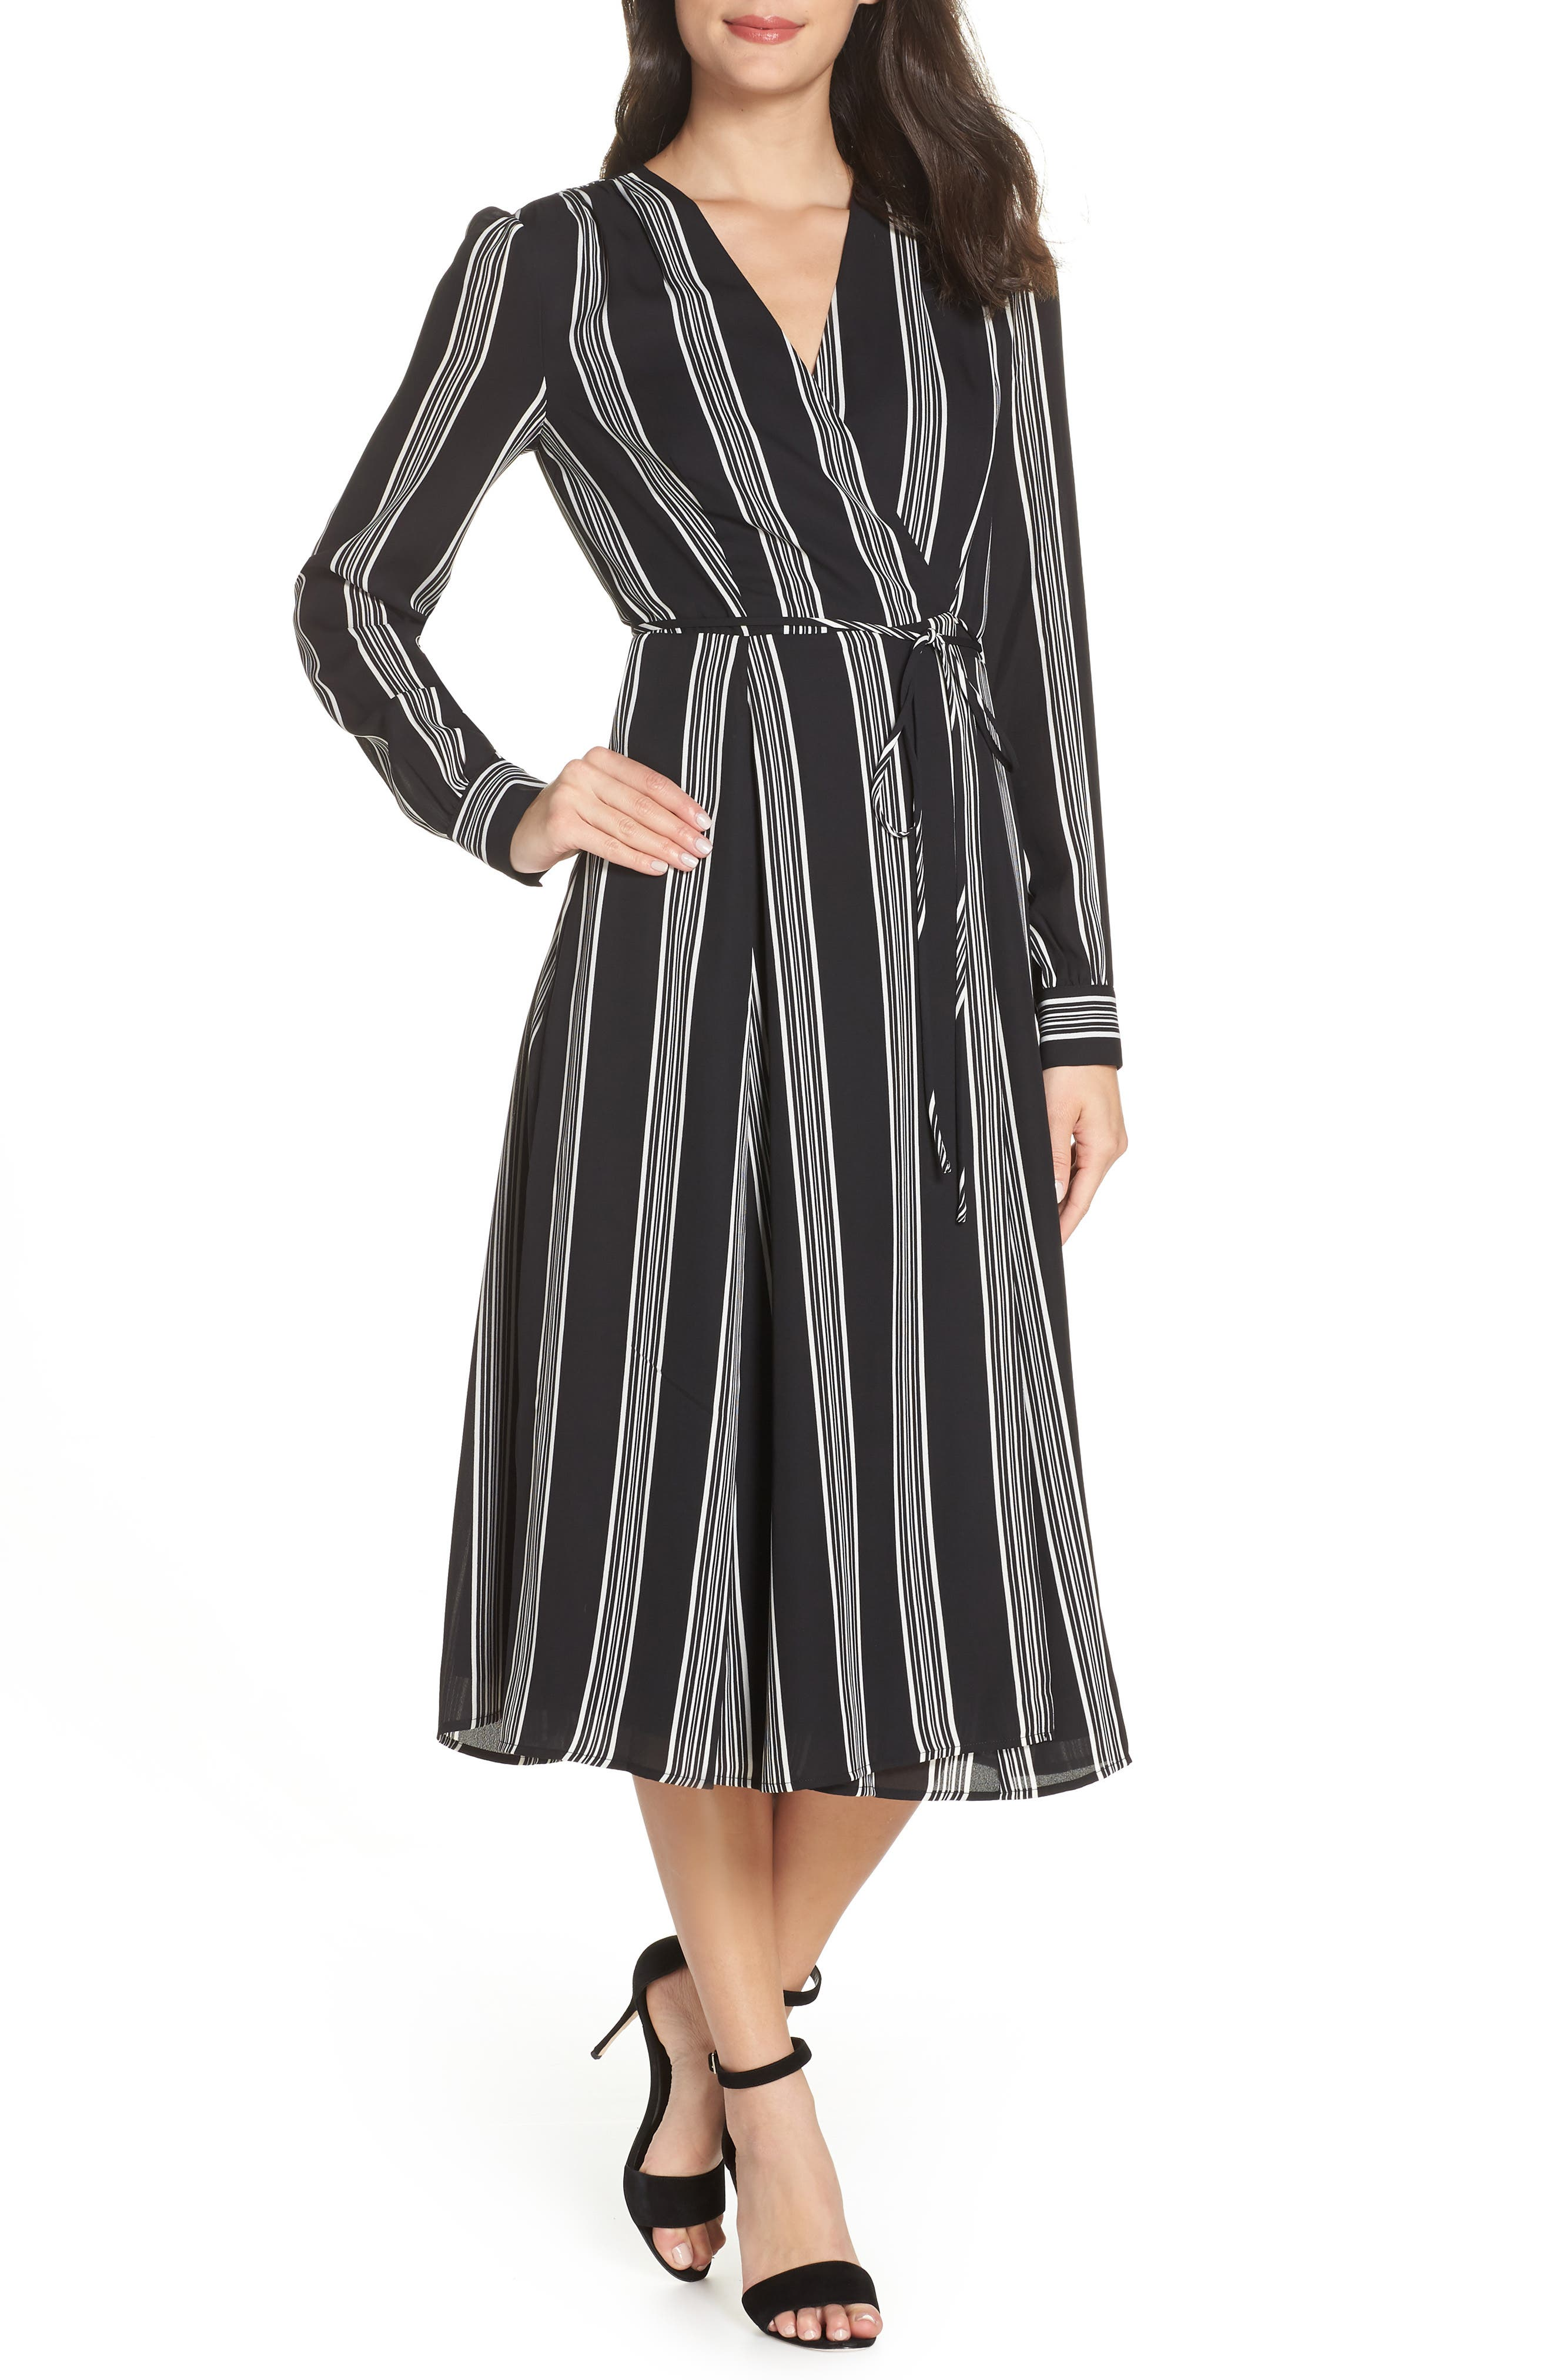 CHARLES HENRY Stripe Tie Waist Midi Dress in Black Stripe